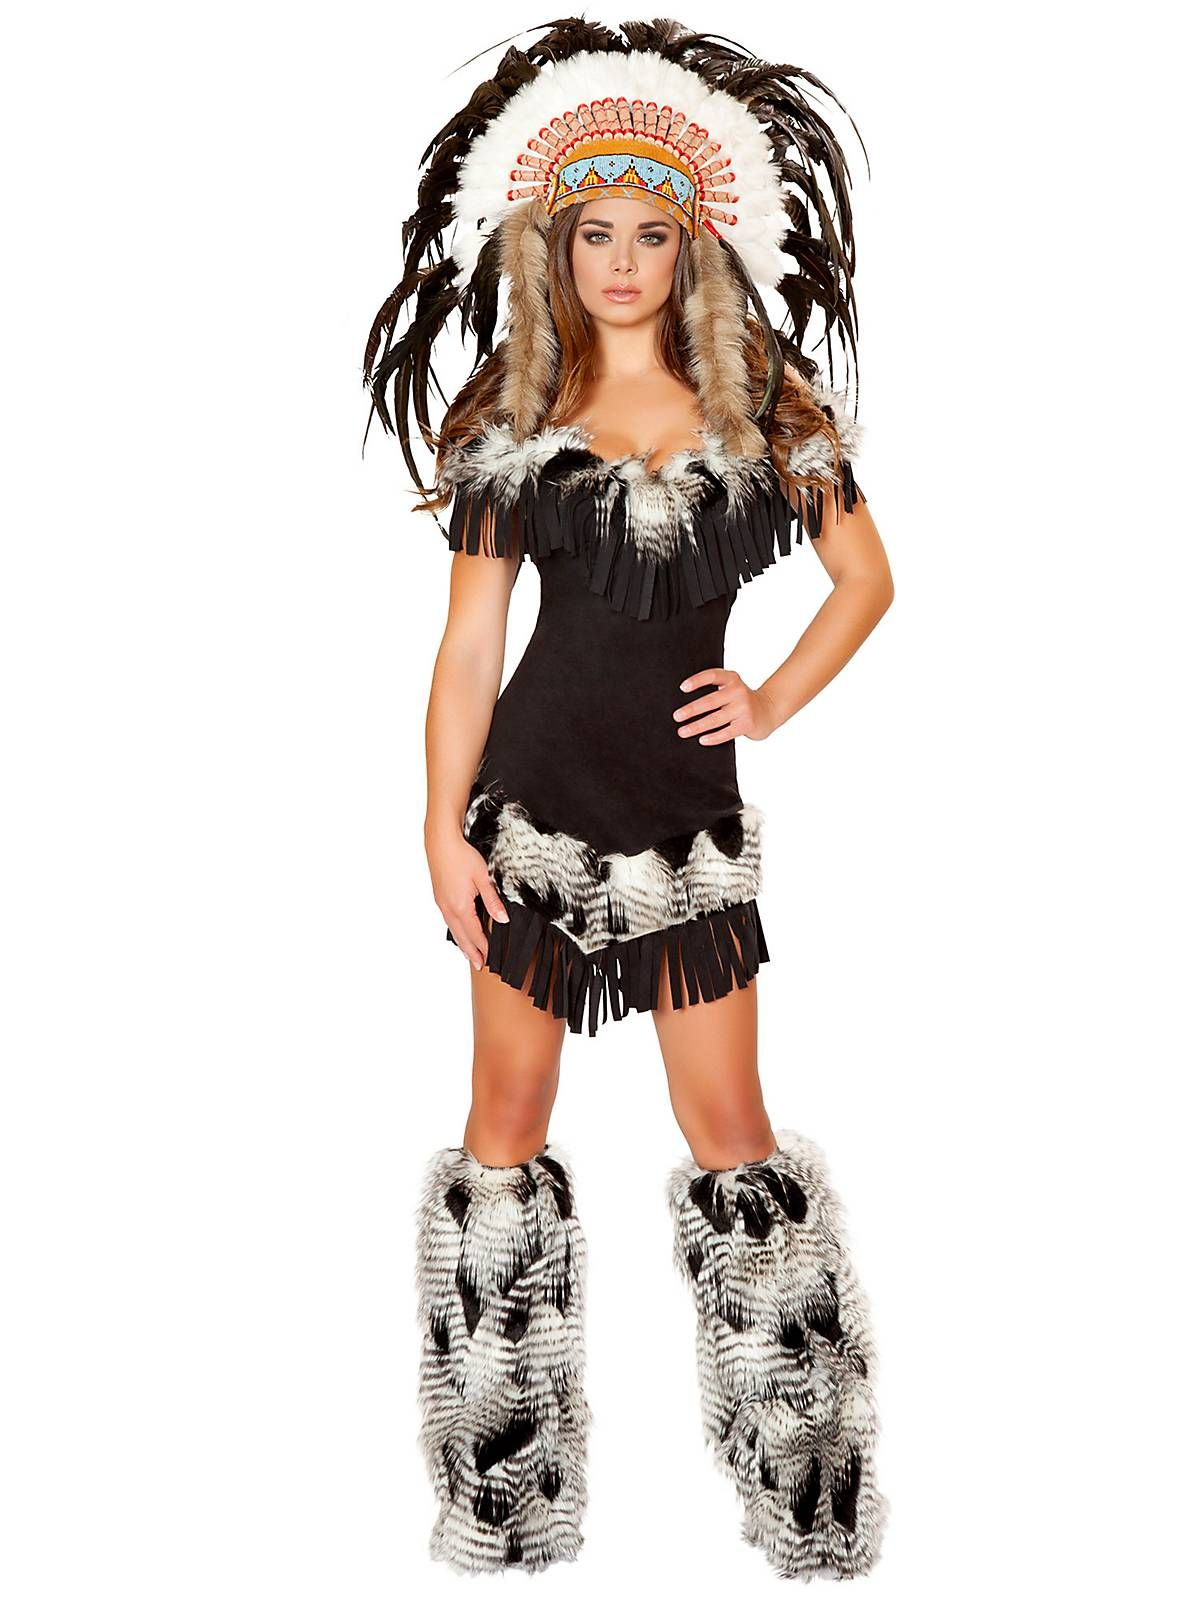 Women's Sexy Cherokee Princess Costume | Wholesale Indians Costumes for Adults